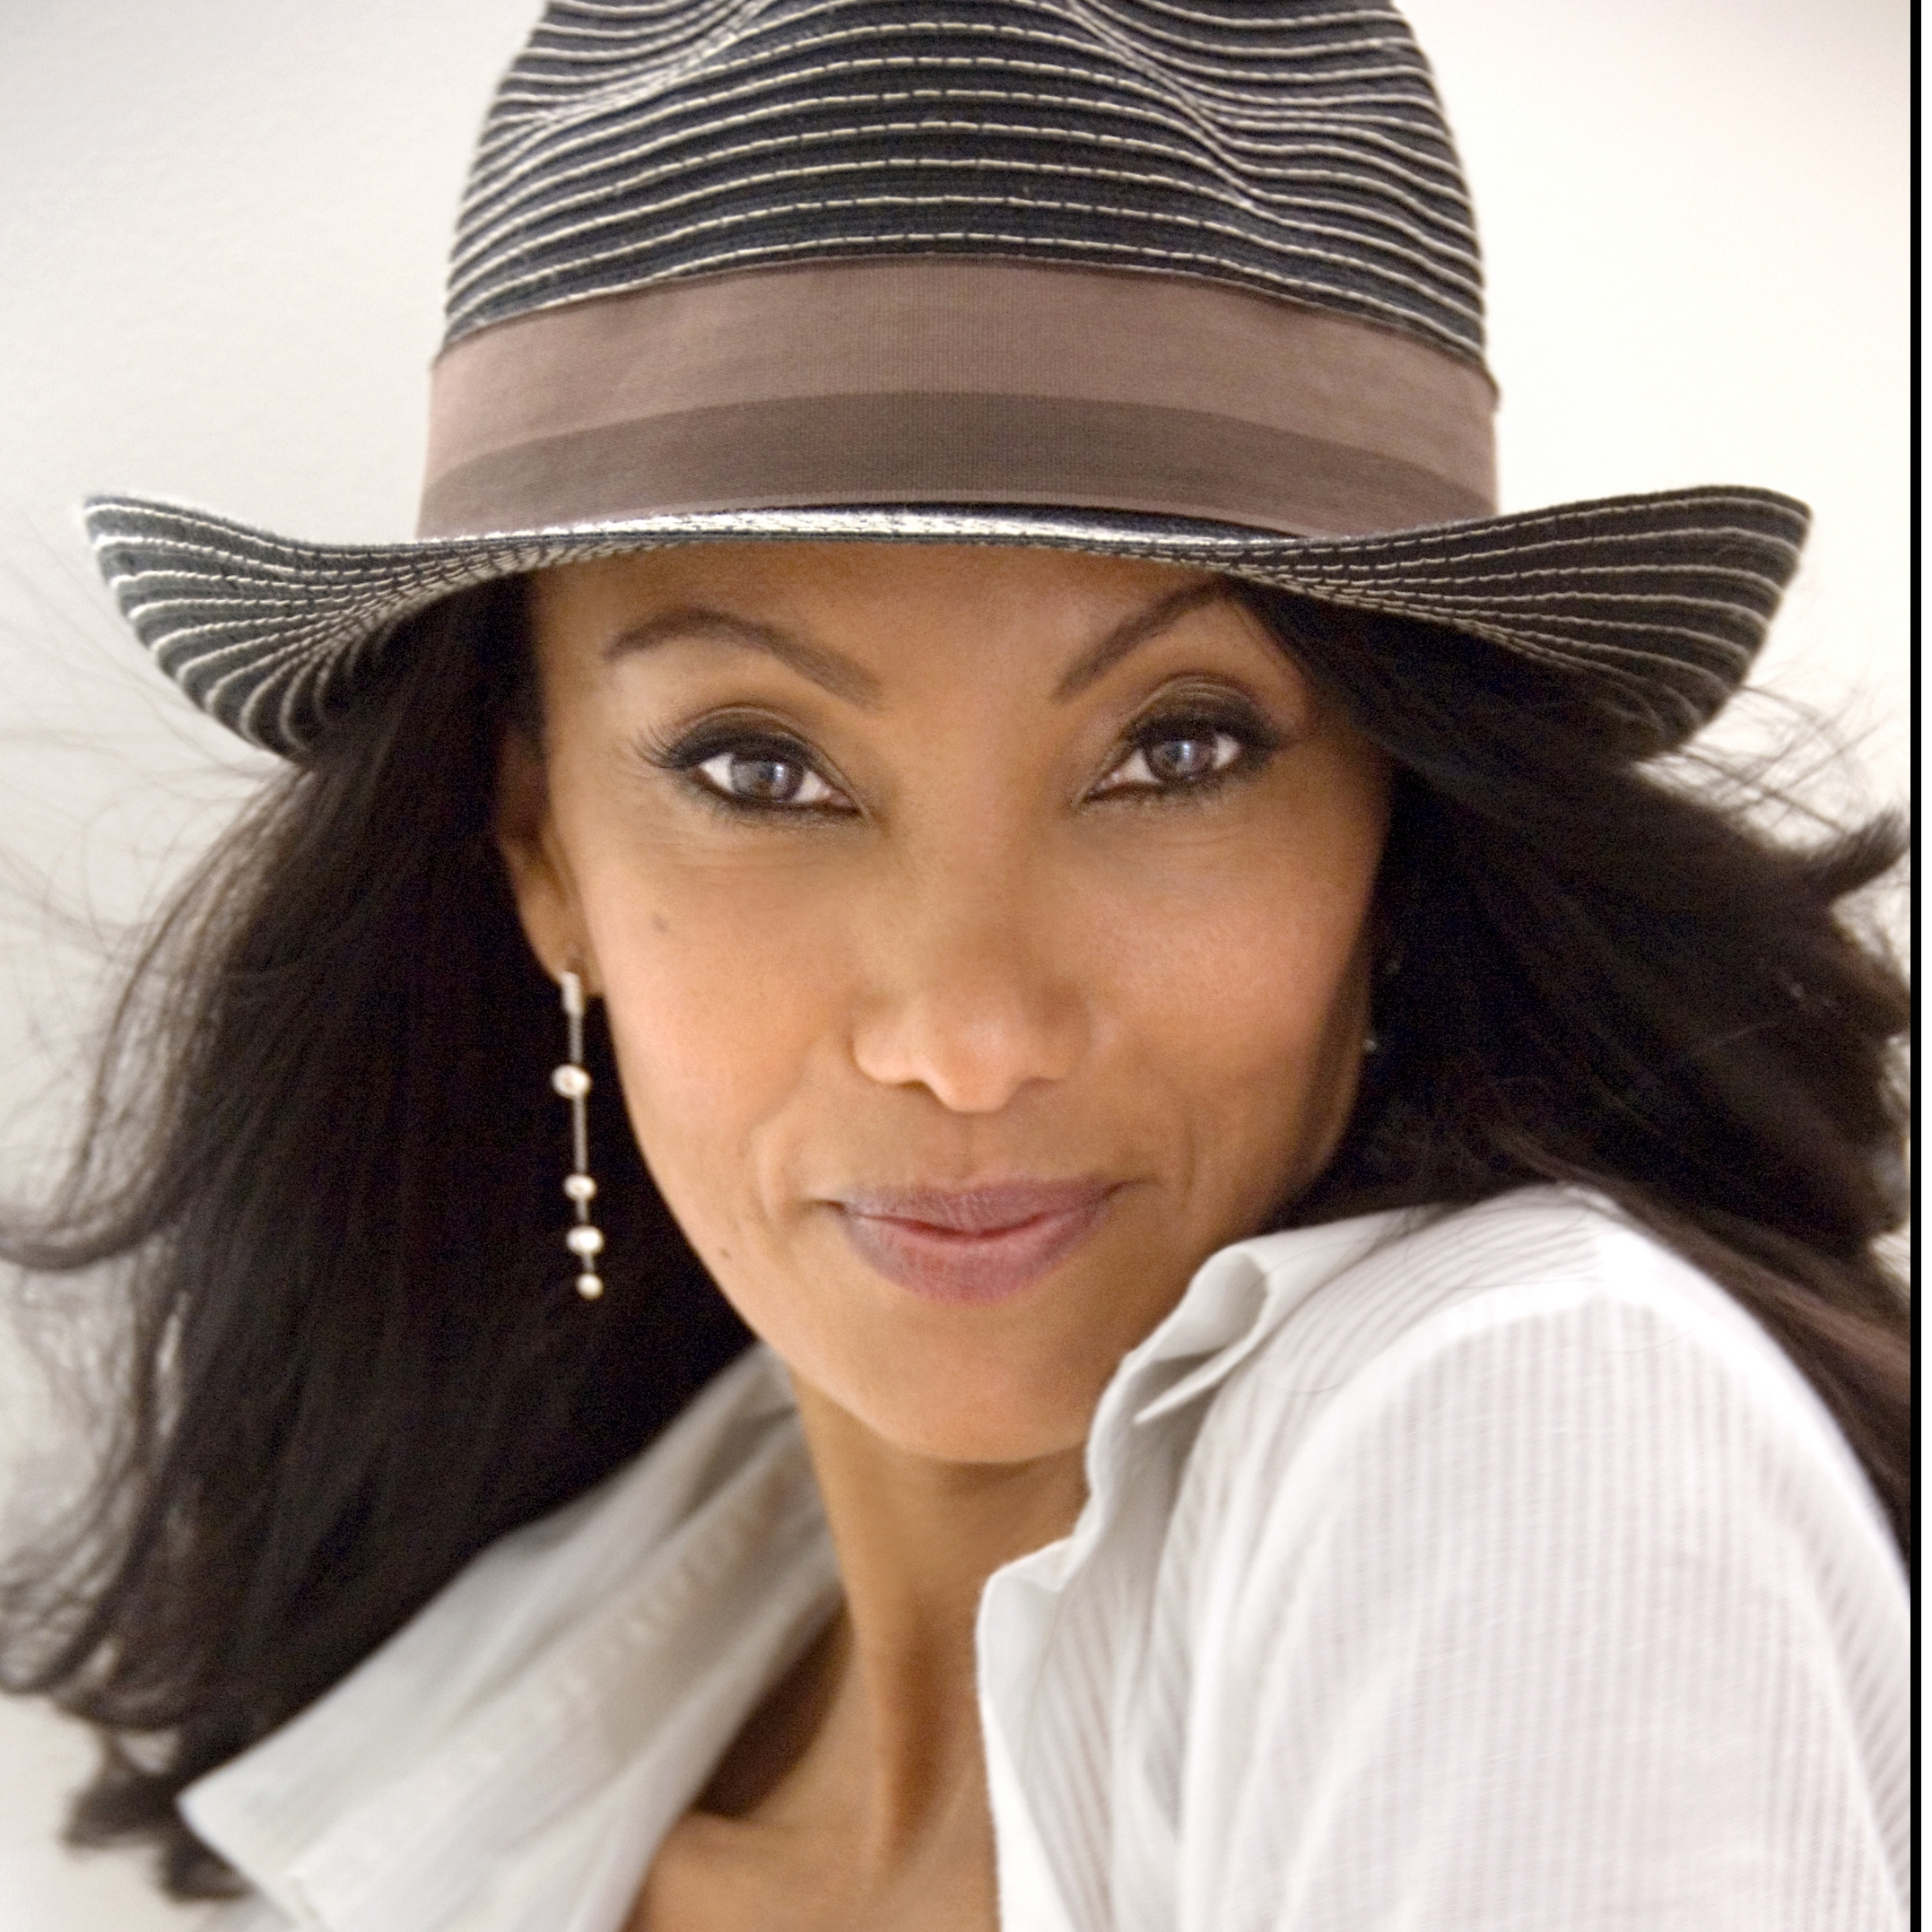 Avatar of Downtown Julie Brown